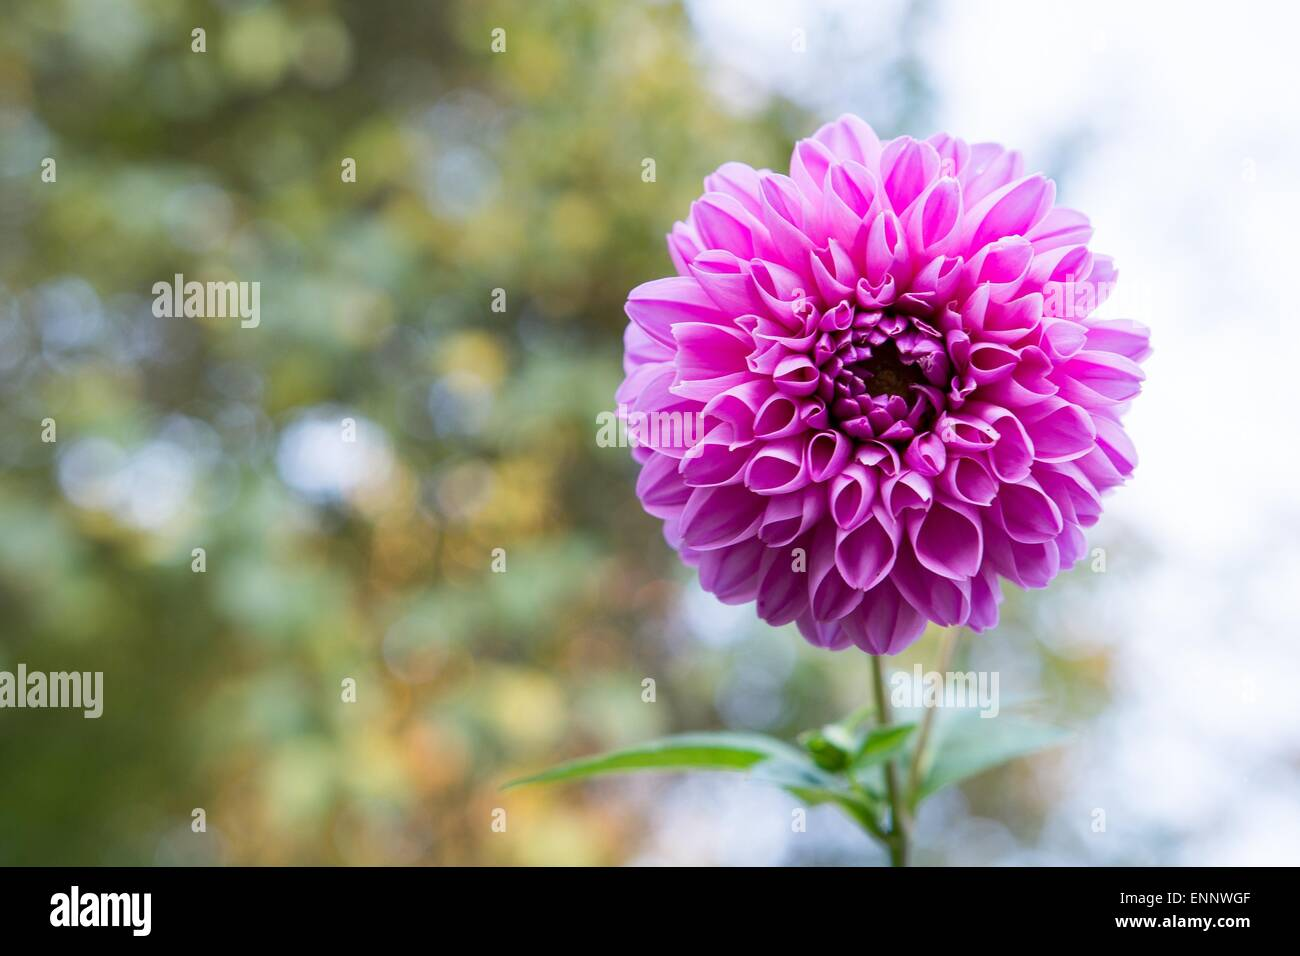 Flower With Nice Pink Blossom And Green Blurred Background